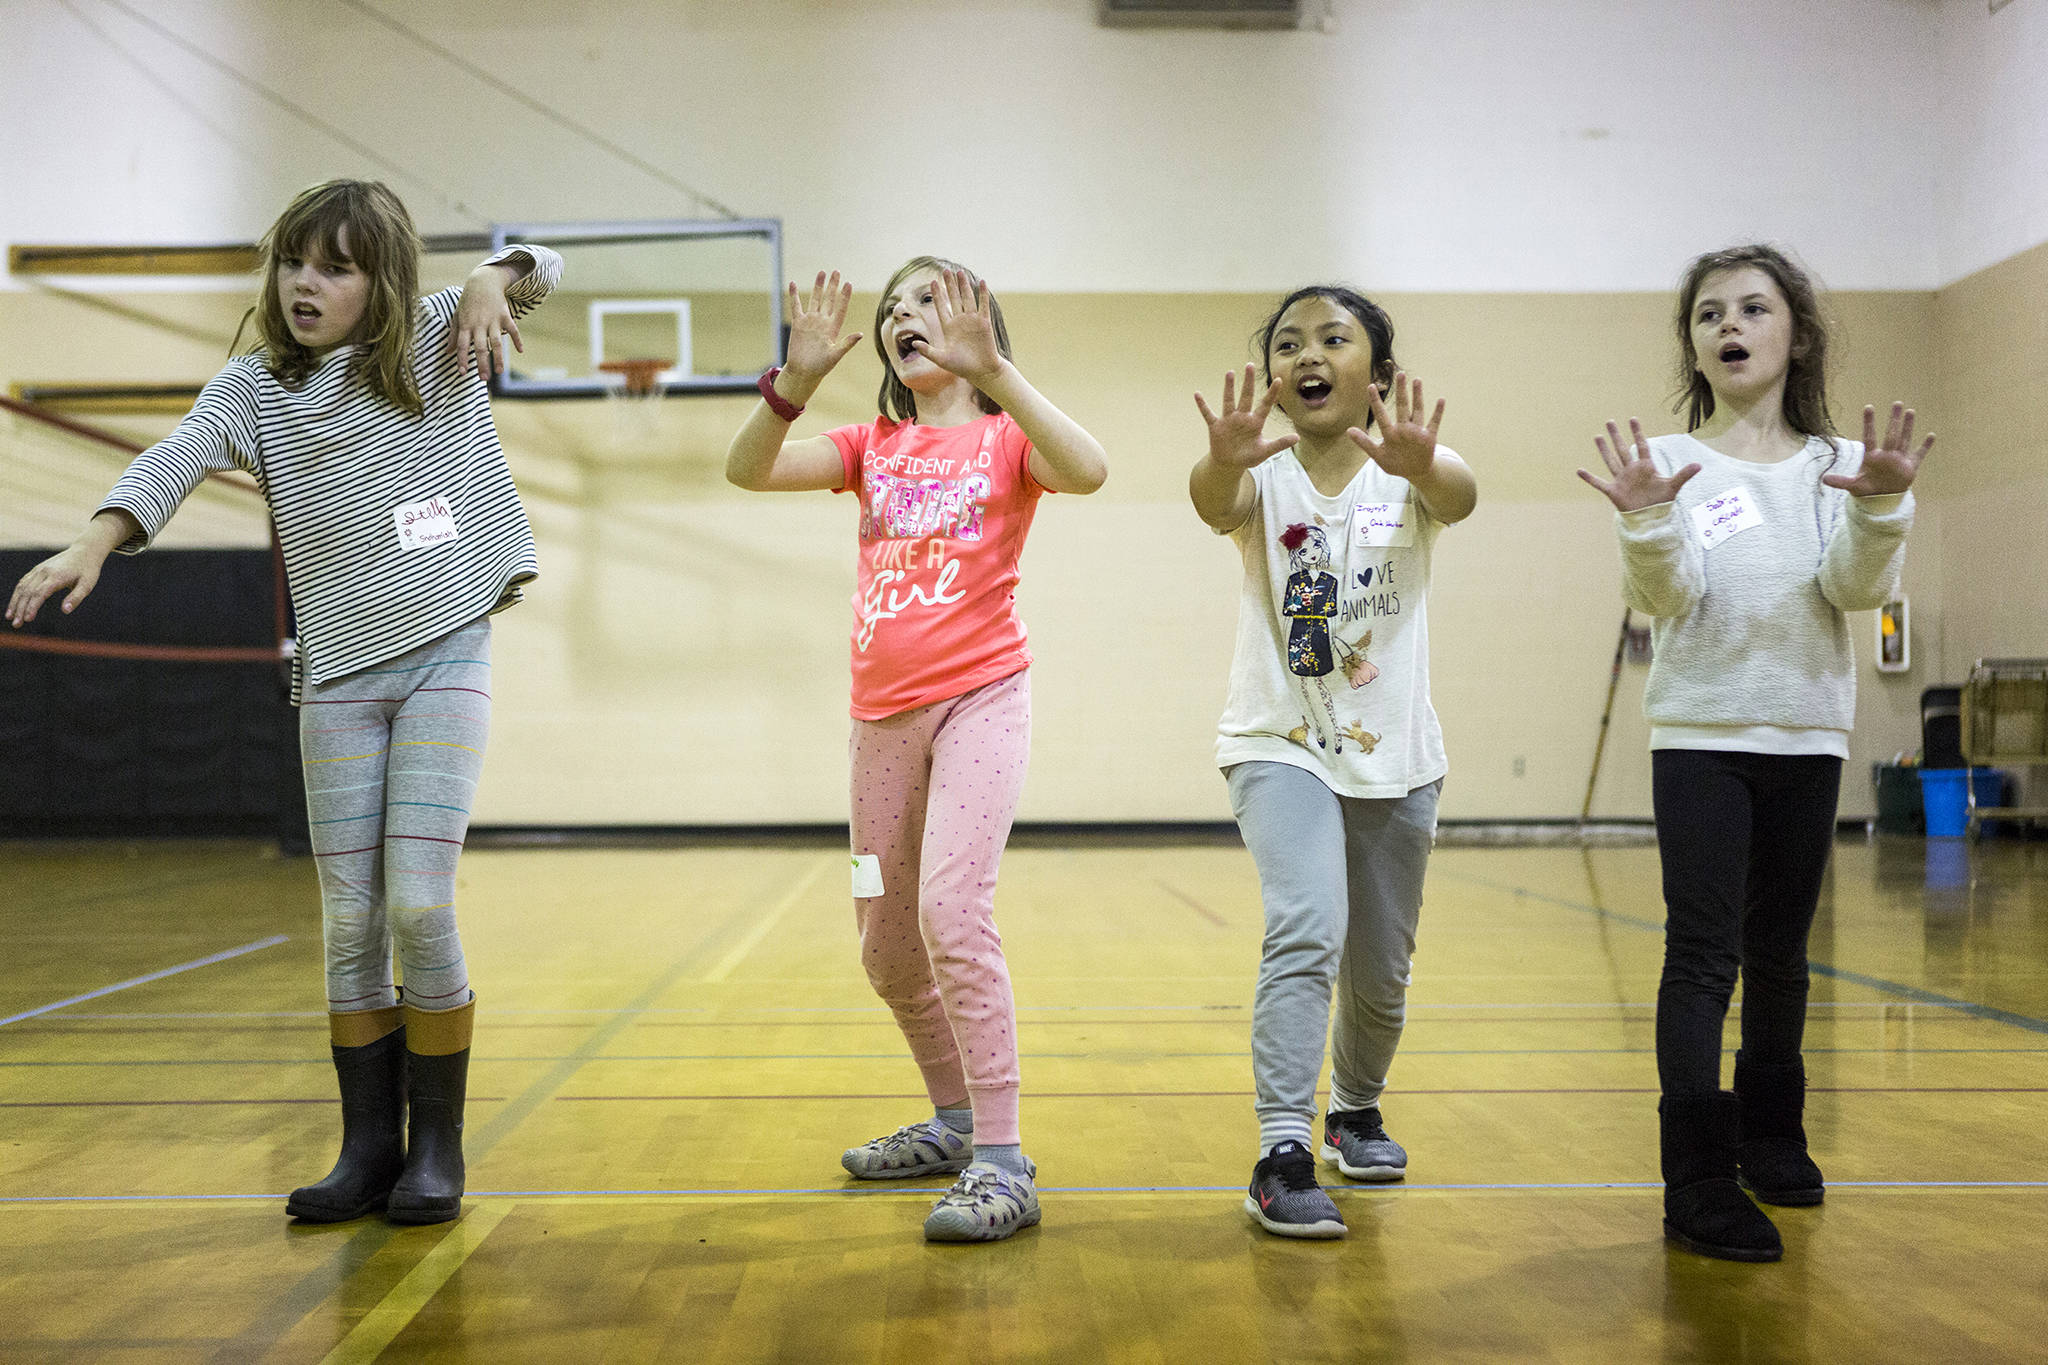 """From left, Stella McClung, 9, Hailey Gaddis, 9, Irajoy Abrea, 9, and Sabrina Axtell, 9, play Sensei Says during the <a href=""""https://www.heraldnet.com/news/inspireher-shows-girls-how-to-achieve-and-build-up-steam/"""" target=""""_blank"""">InspireHER event</a> at Snohomish Boys & Girls Club on Nov. 2 in Snohomish. (Olivia Vanni / The Herald)"""